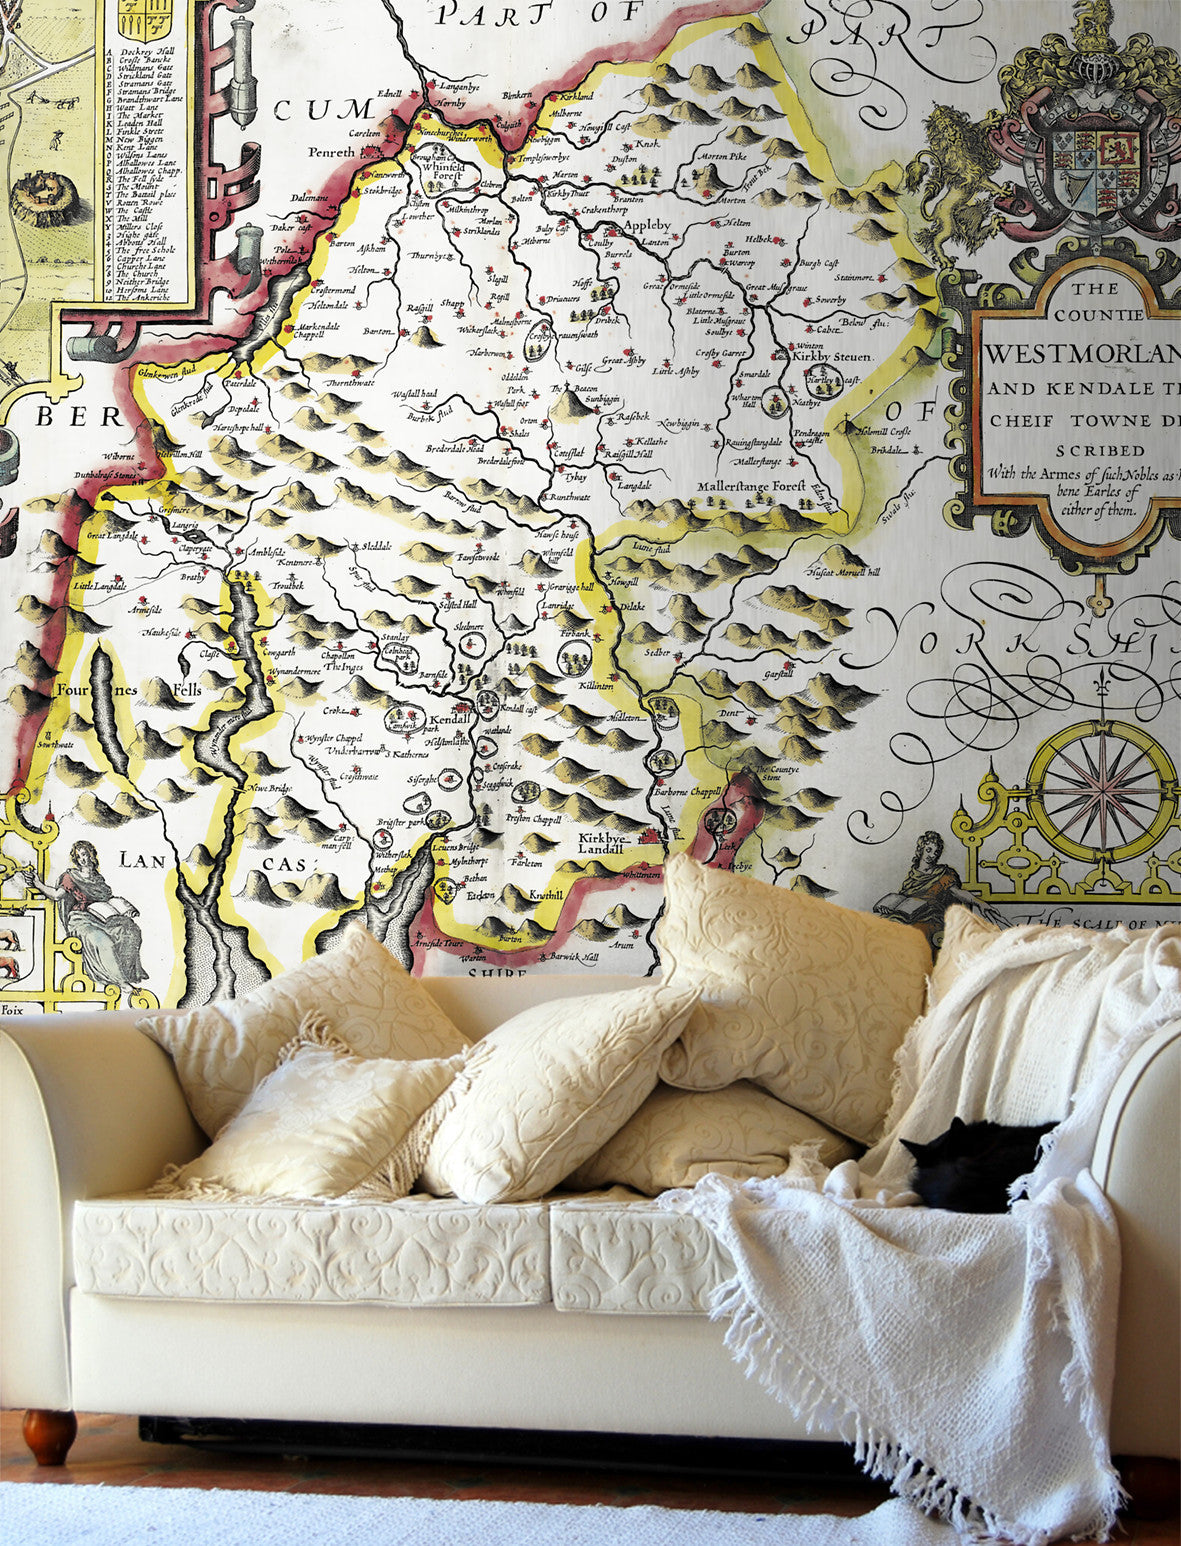 Map Wallpaper - Vintage County Map - Westmoreland